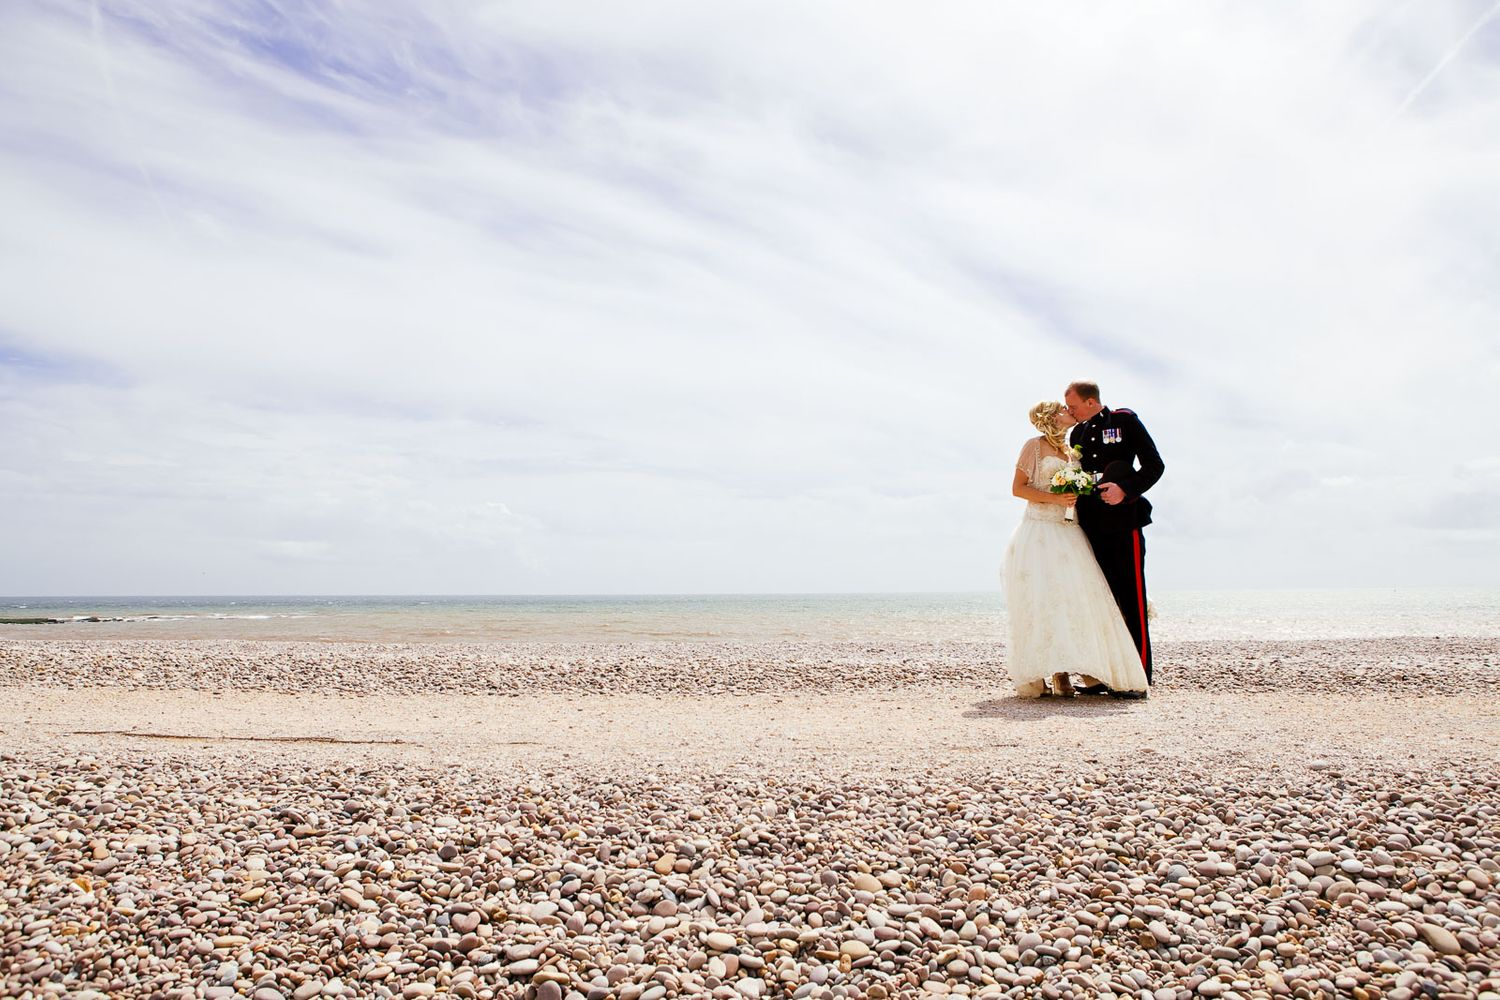 Budleigh Salterton beach wedding photography